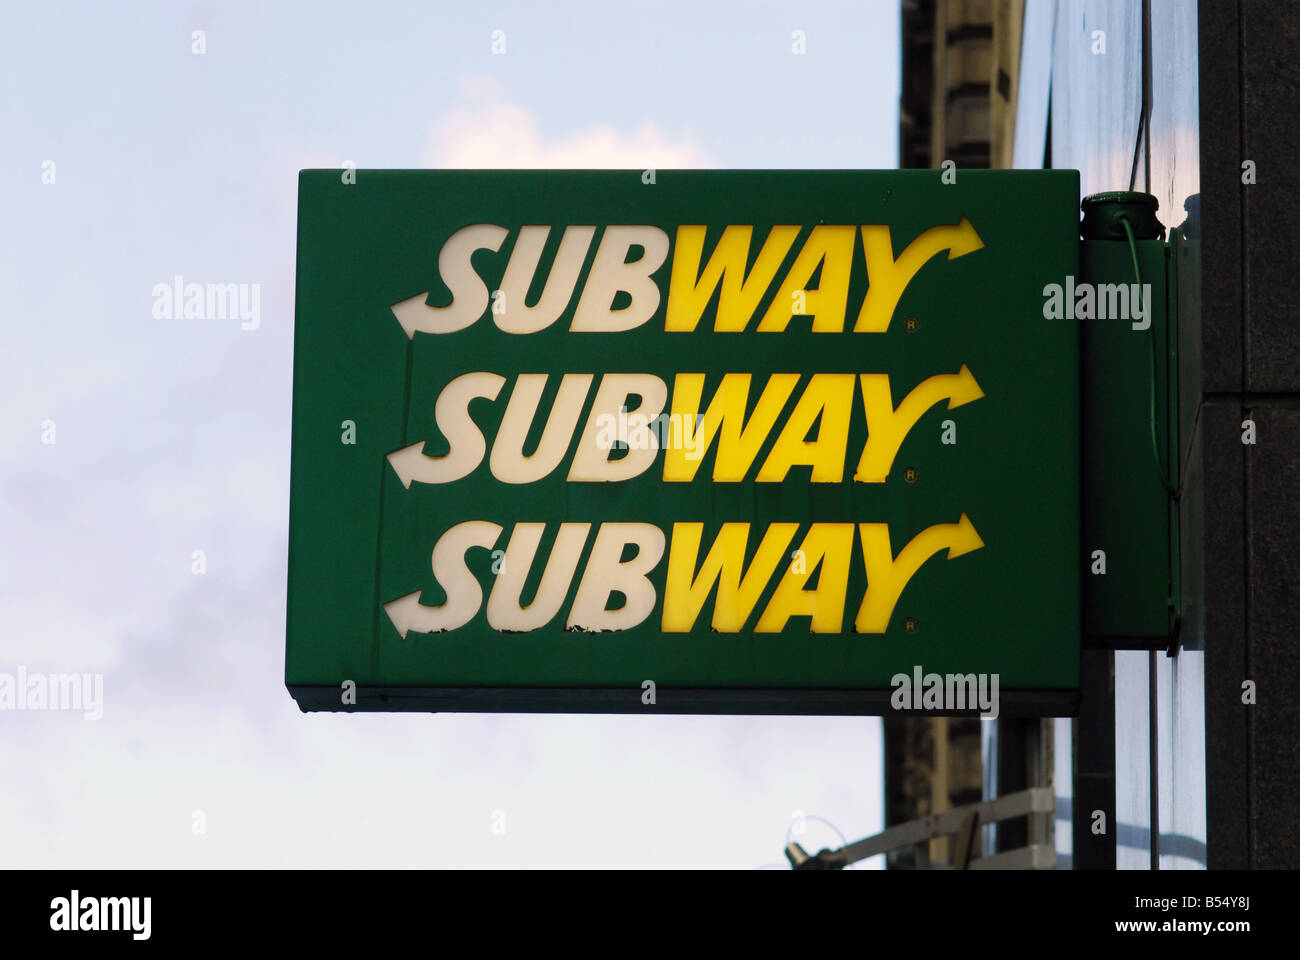 Subway Sandwich Sign - Stock Image